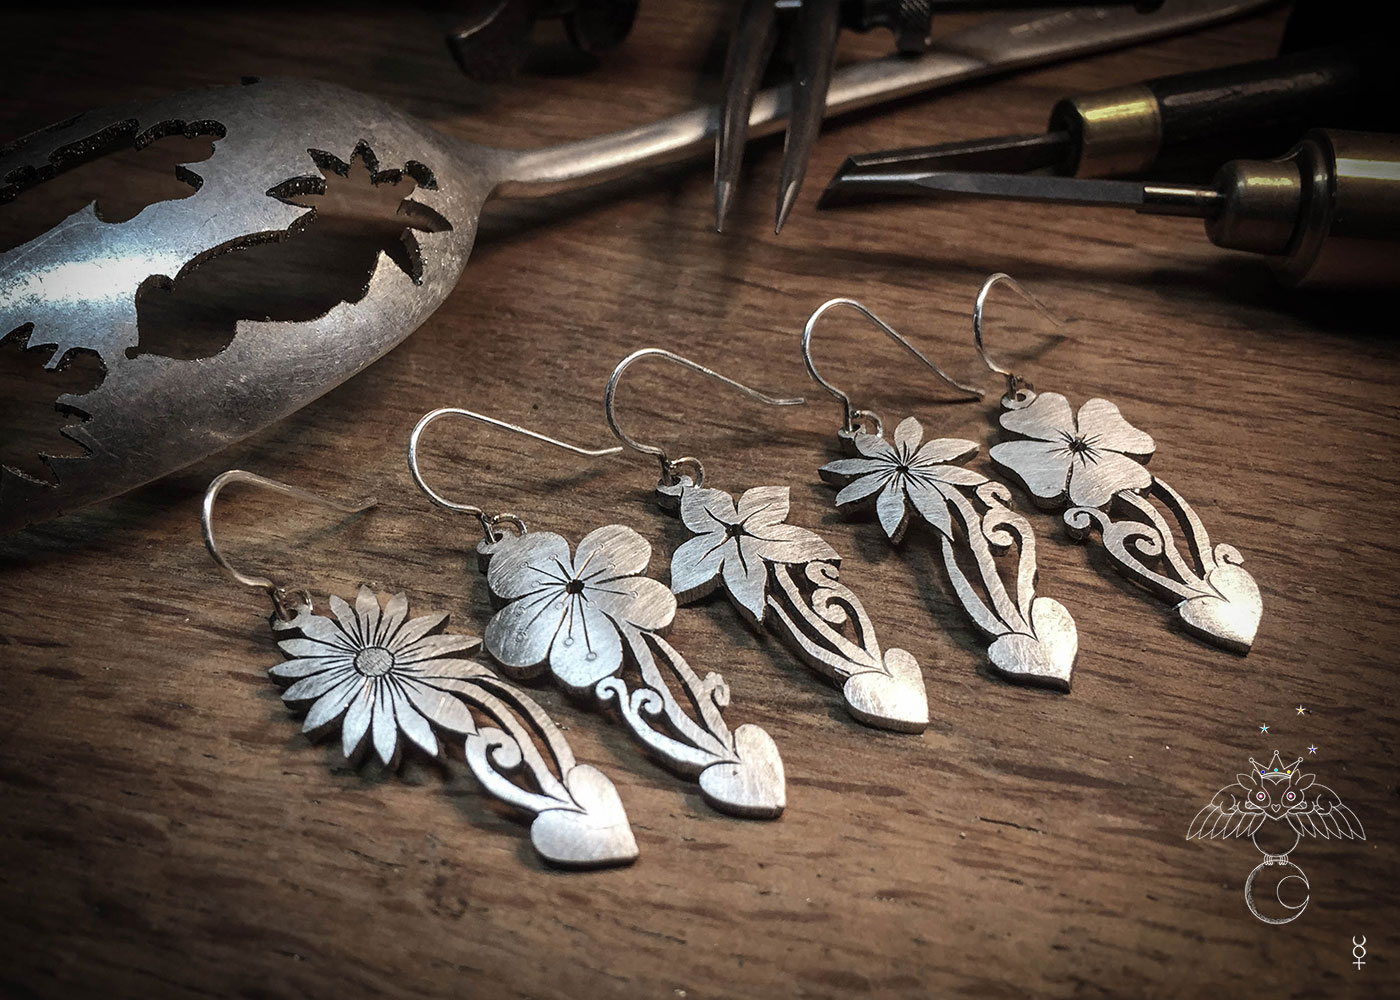 Flower earrings beautifully handcrafted from reused antique spoons by ethical independent jeweller, Hairy Growler.